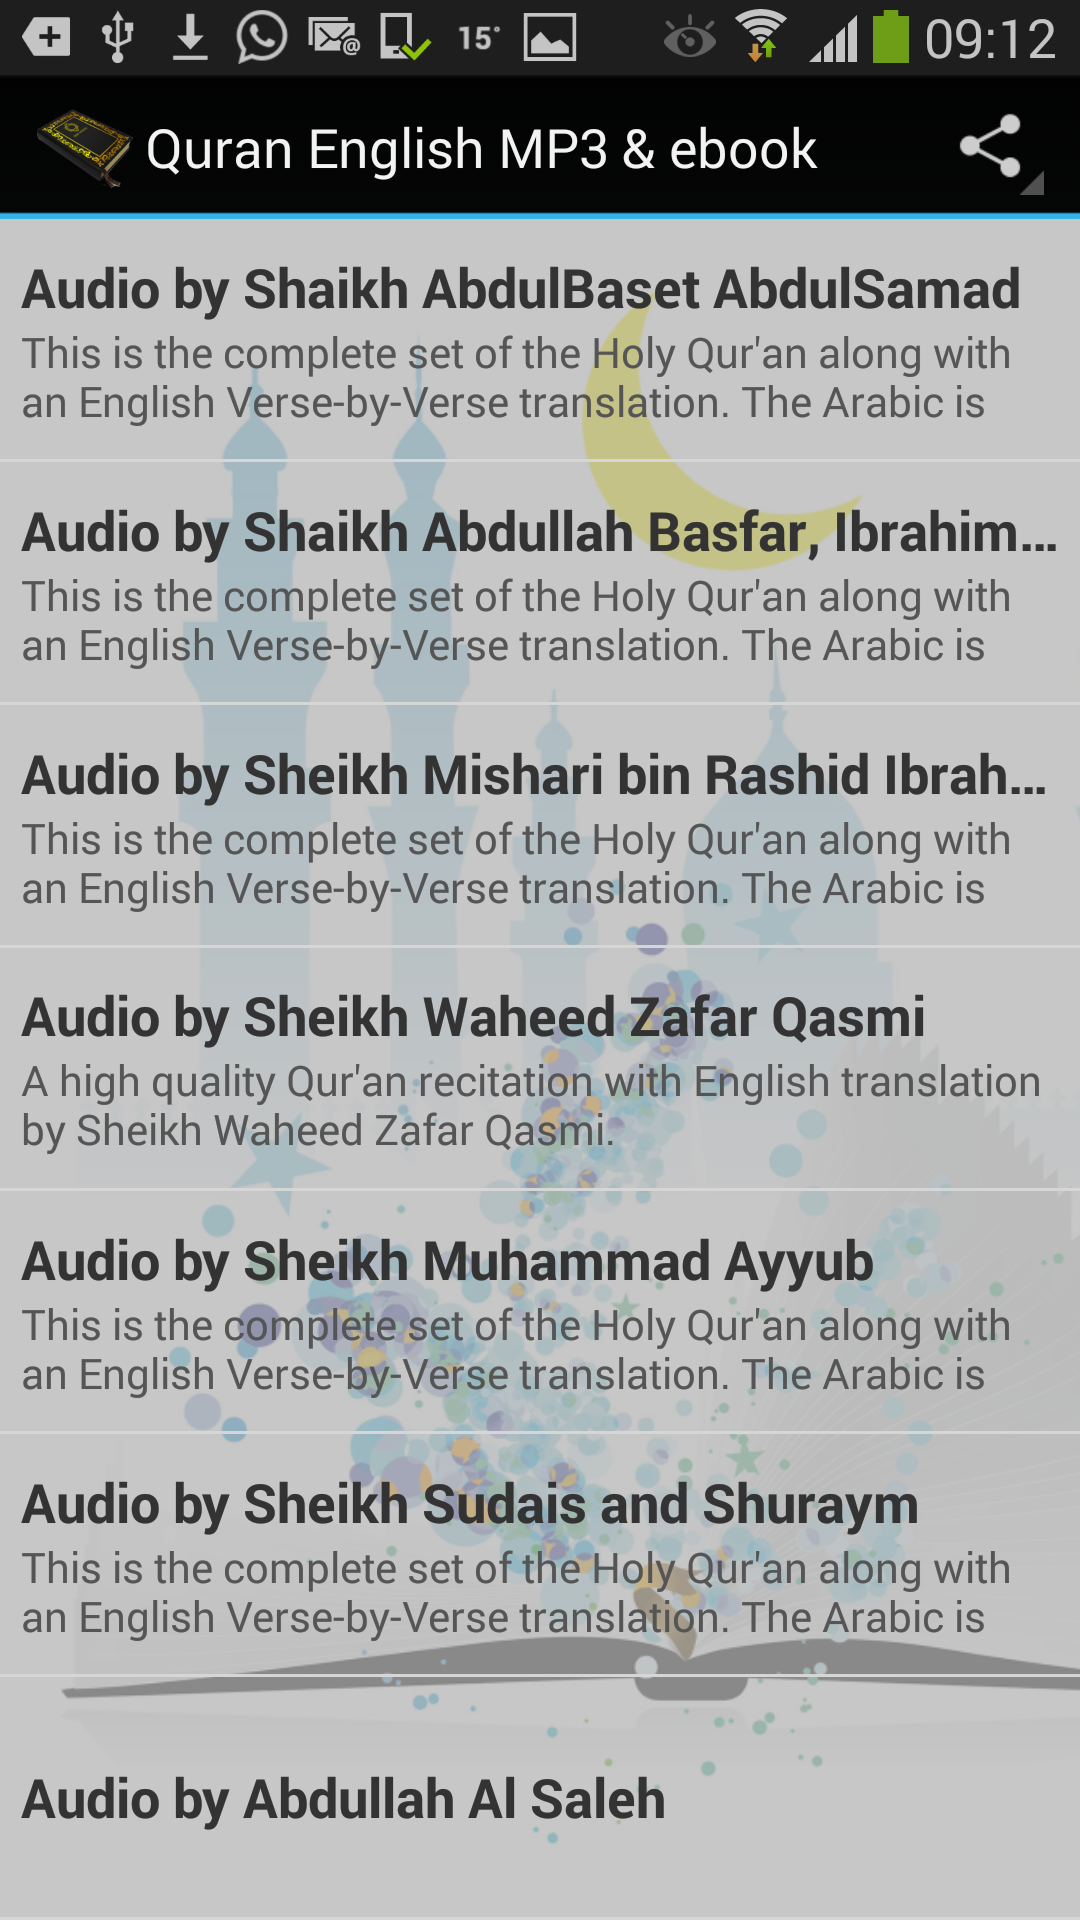 Quran English Translation MP3 & ebook